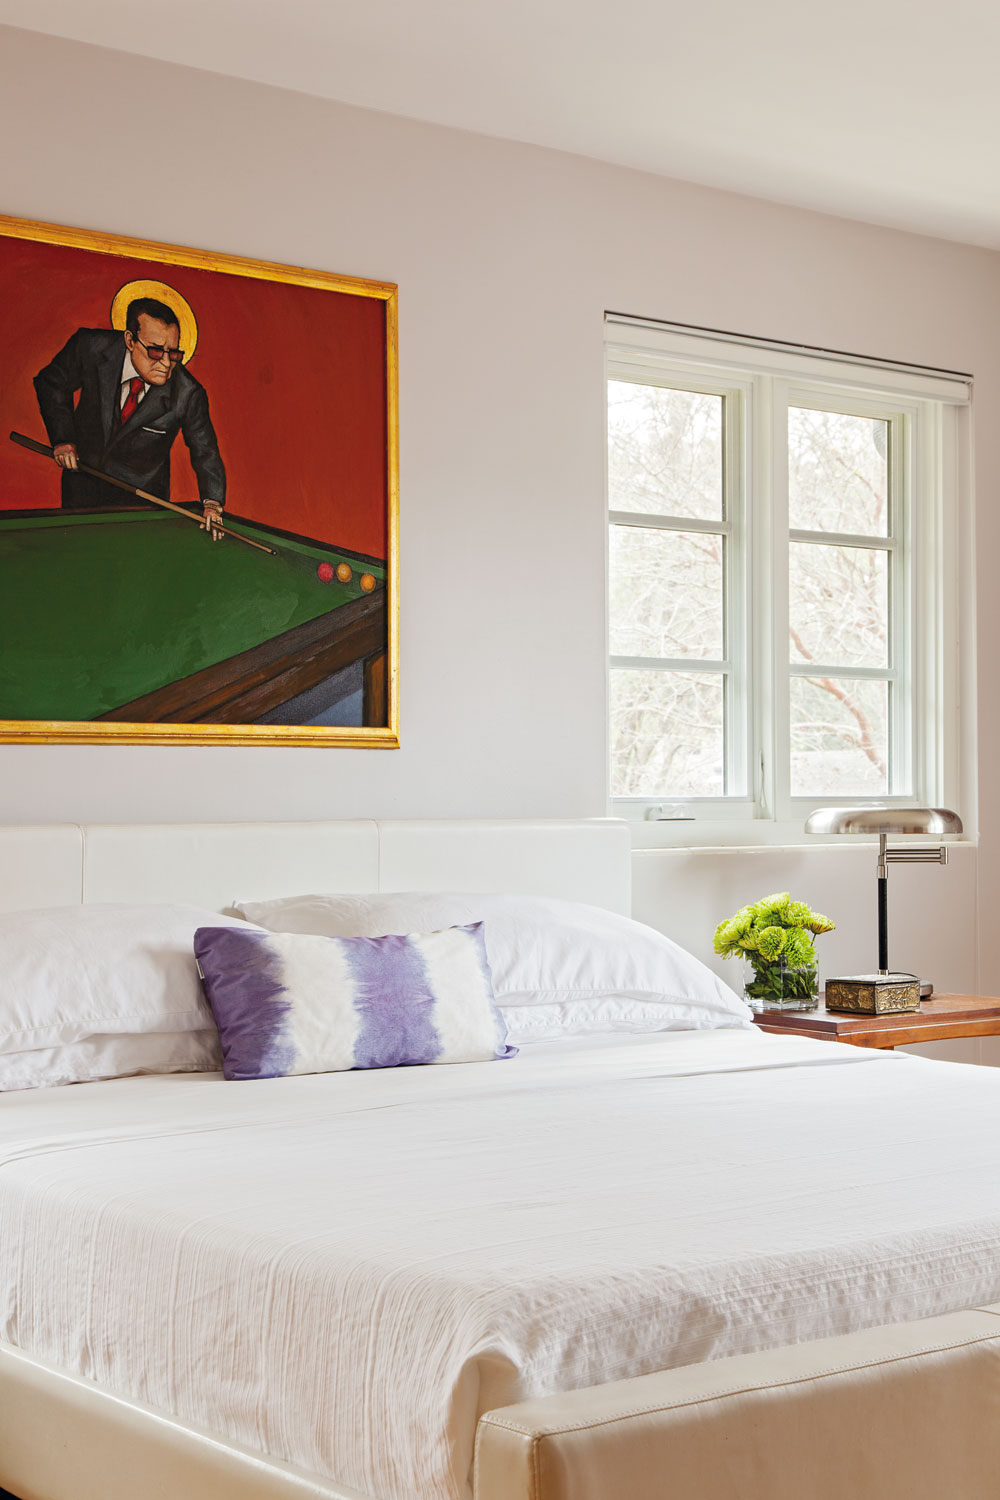 ART WORKS: Christopher is on the board of directors at Redux Studios; his passion for art is reflected in the painting by area artist Bob Snead that hangs in the master bedroom.